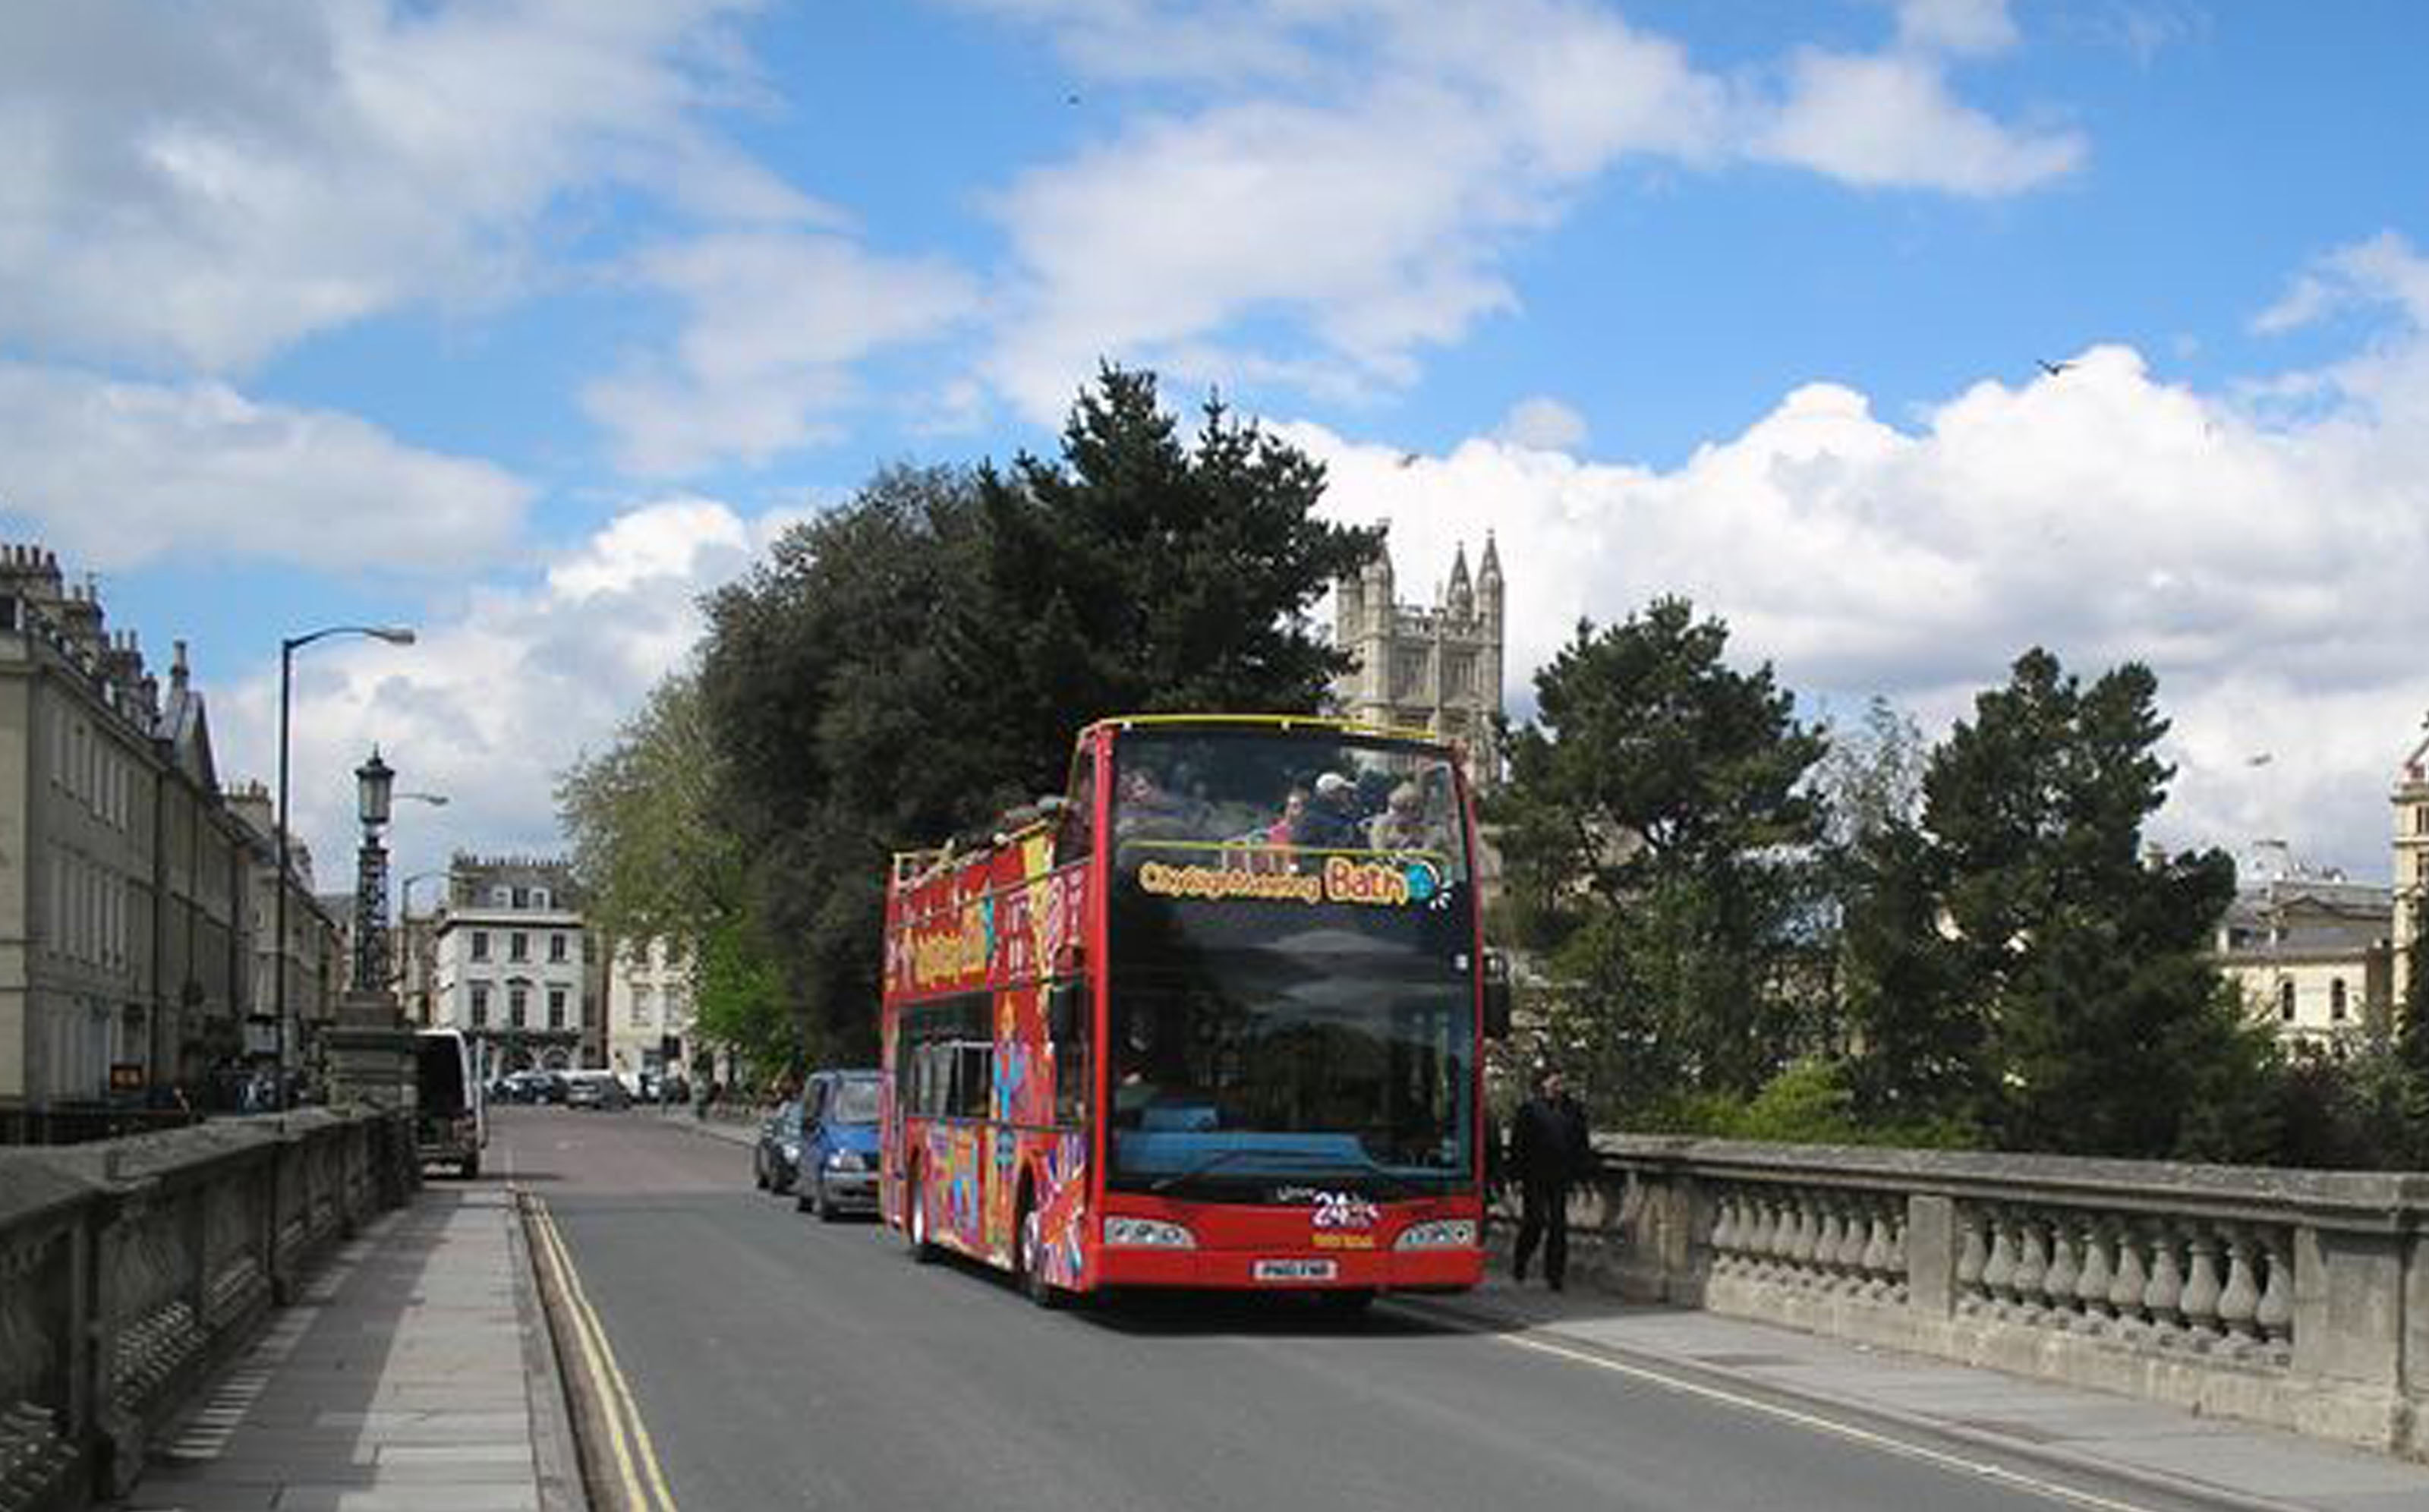 Bath Hop-on-Hop-off Bus Tour